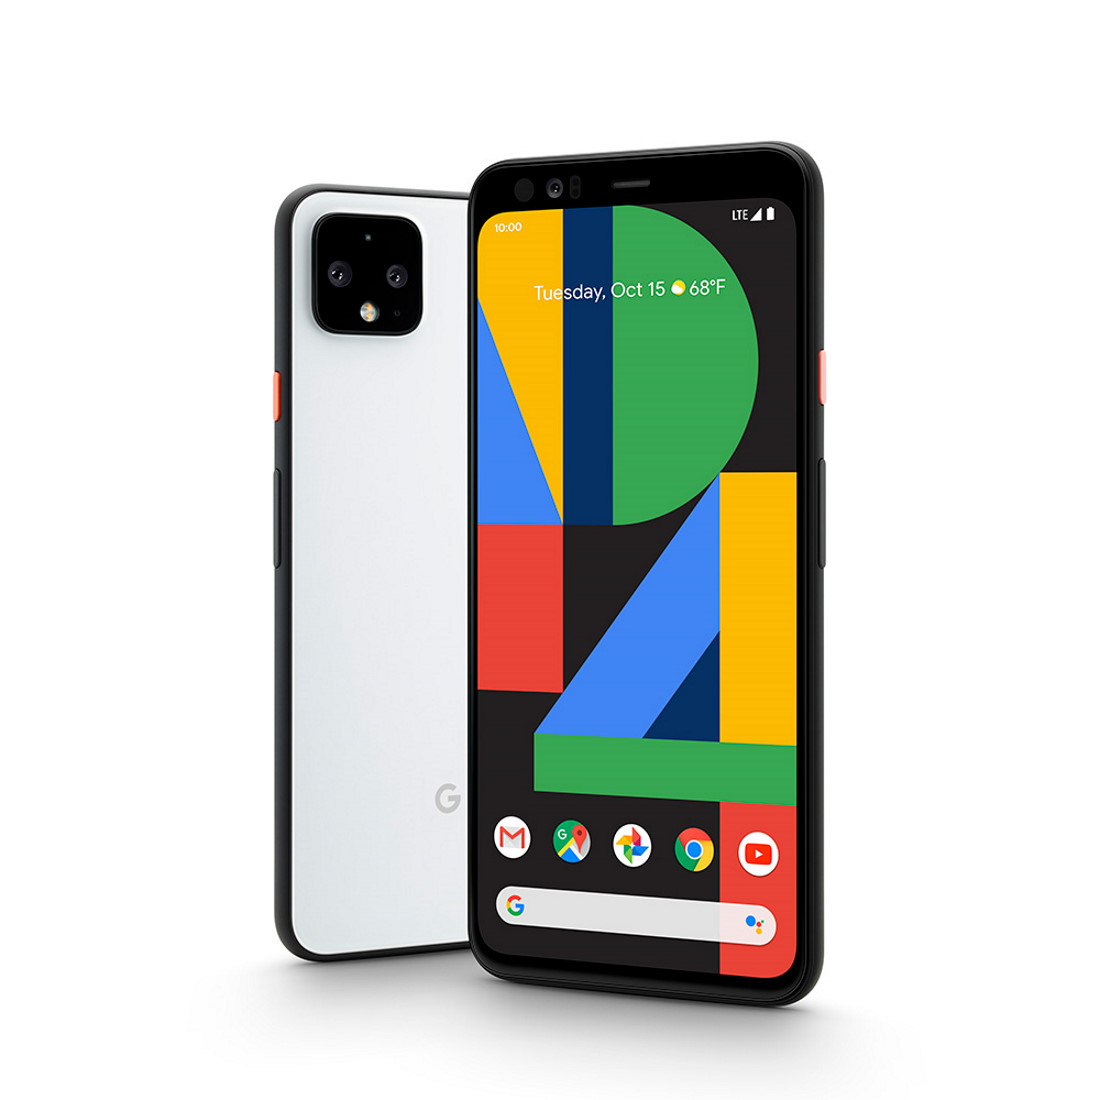 New Google Pixel 4a will retail for $399